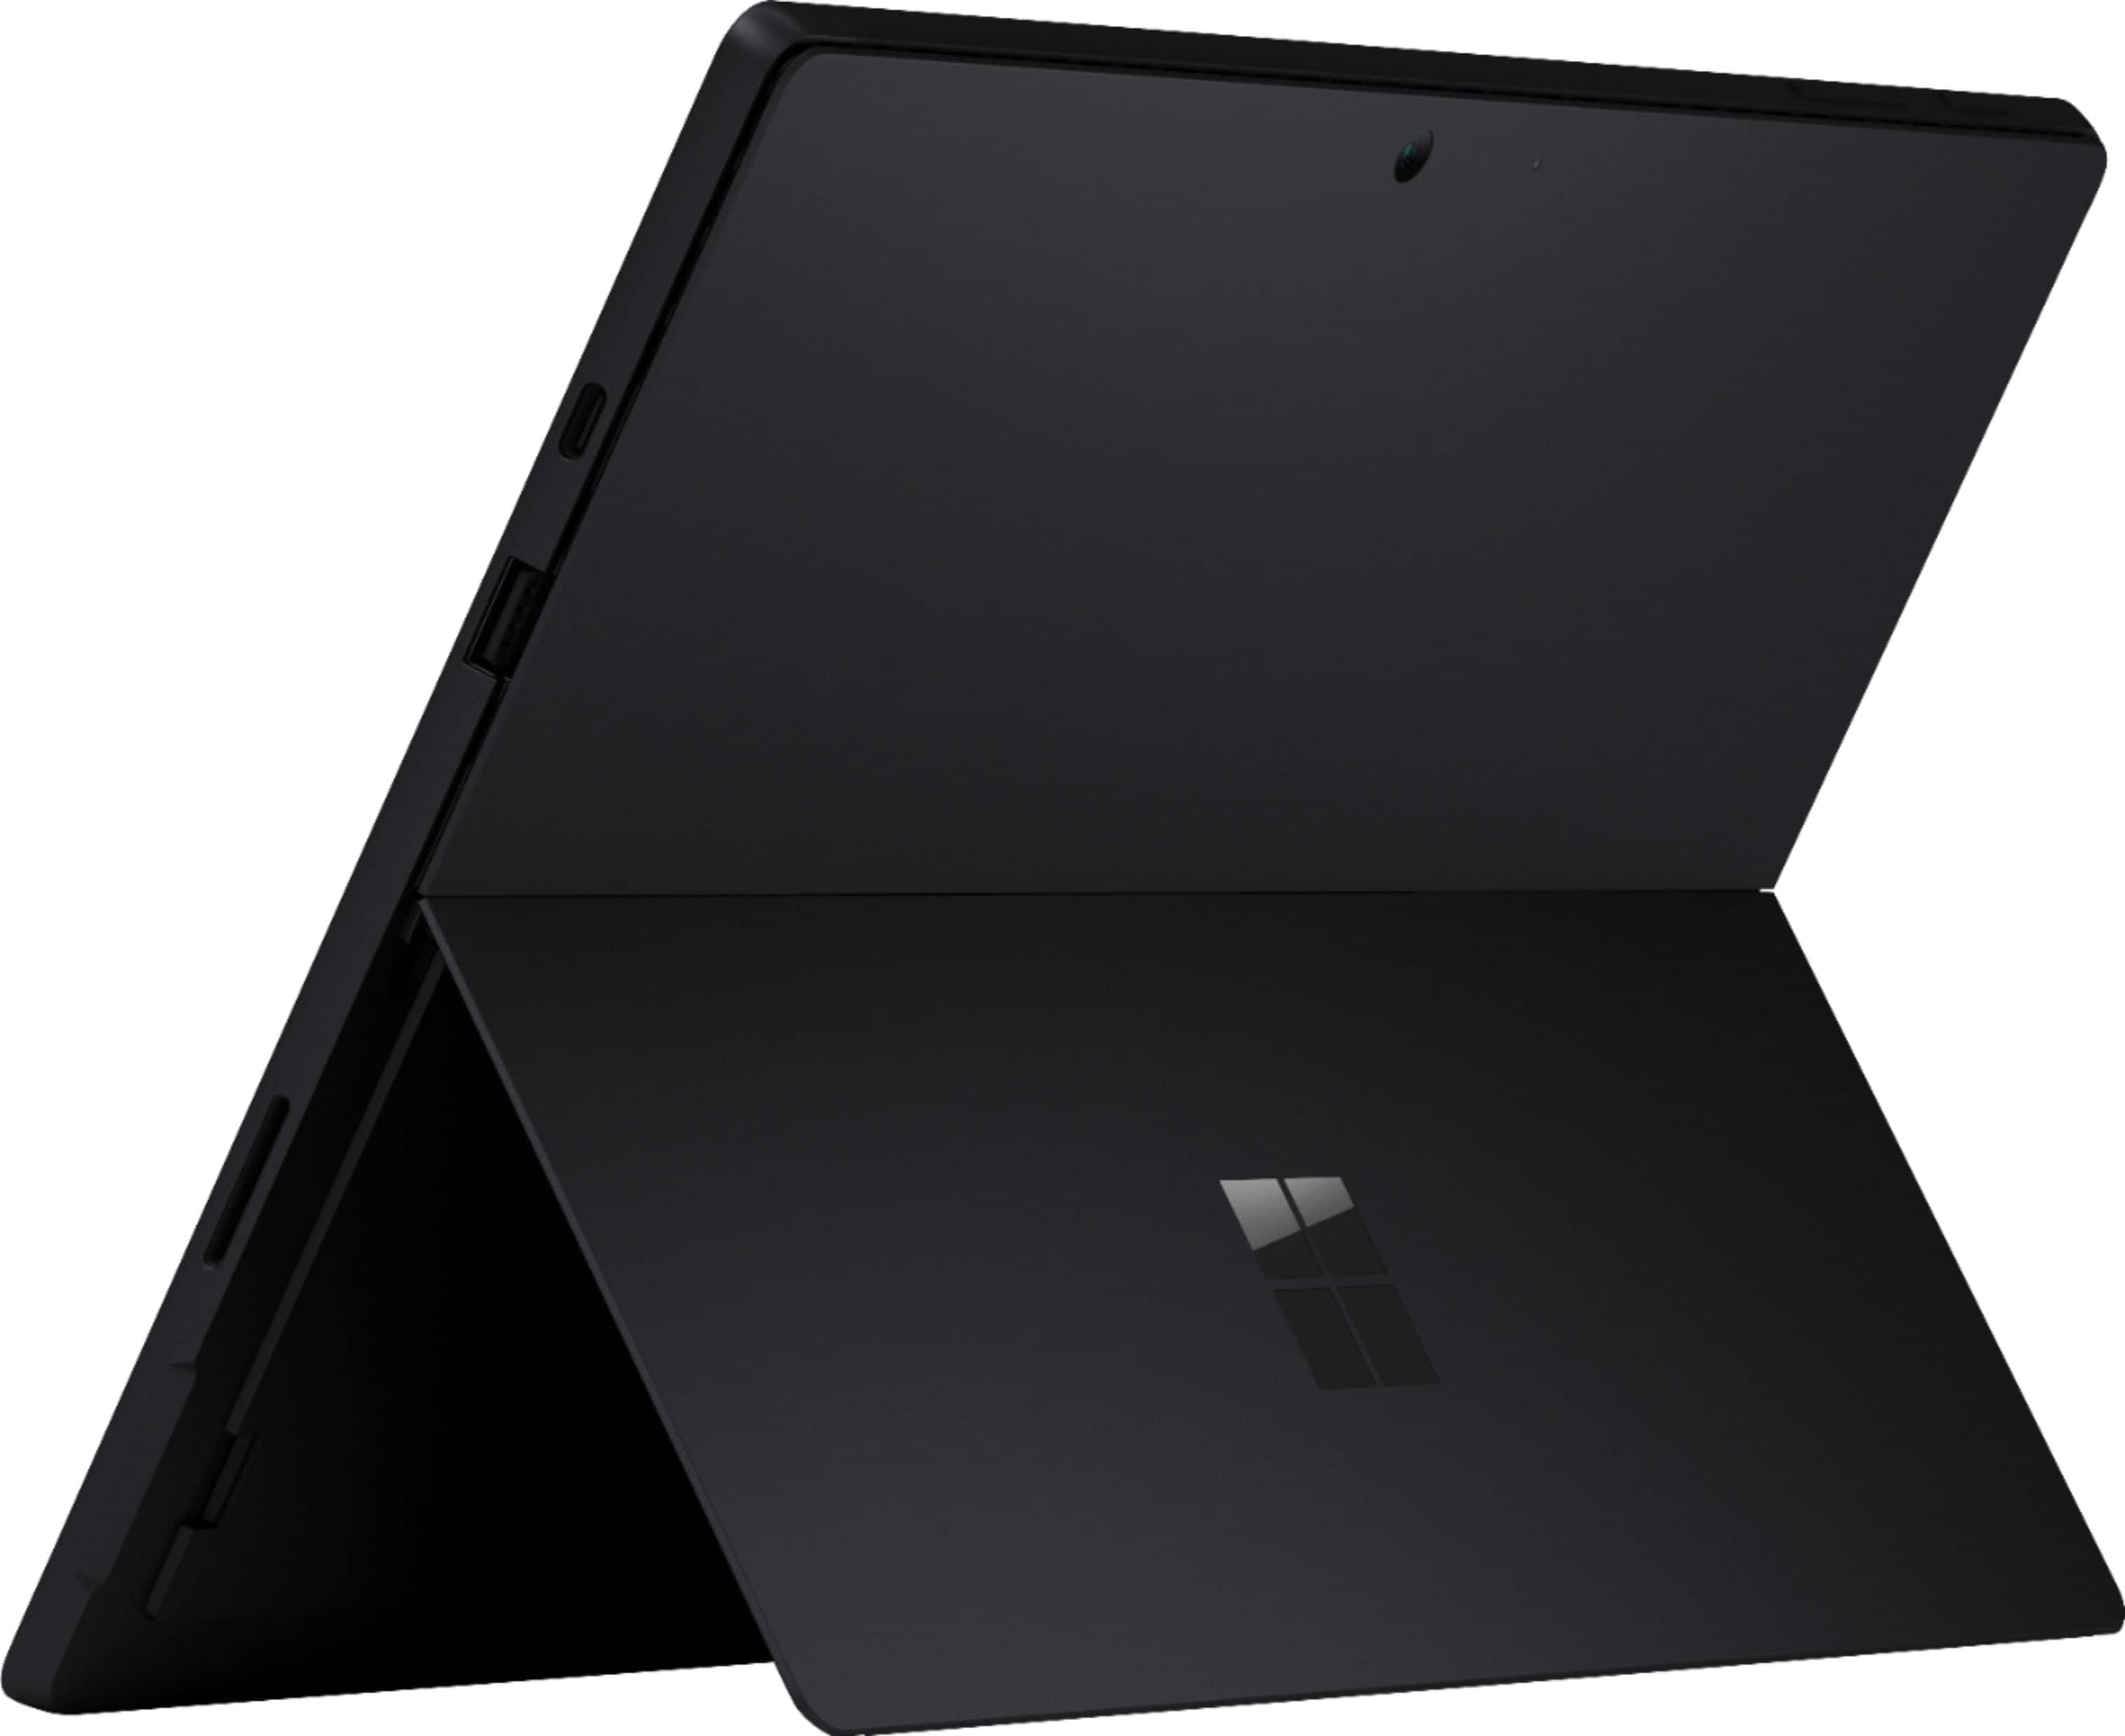 """Microsoft - Surface Pro 7 - 12.3"""" Touch Screen - Intel Core i5 - 8GB Memory - 256GB SSD with Black Type Cover (Latest Model) - Matte Black $999"""